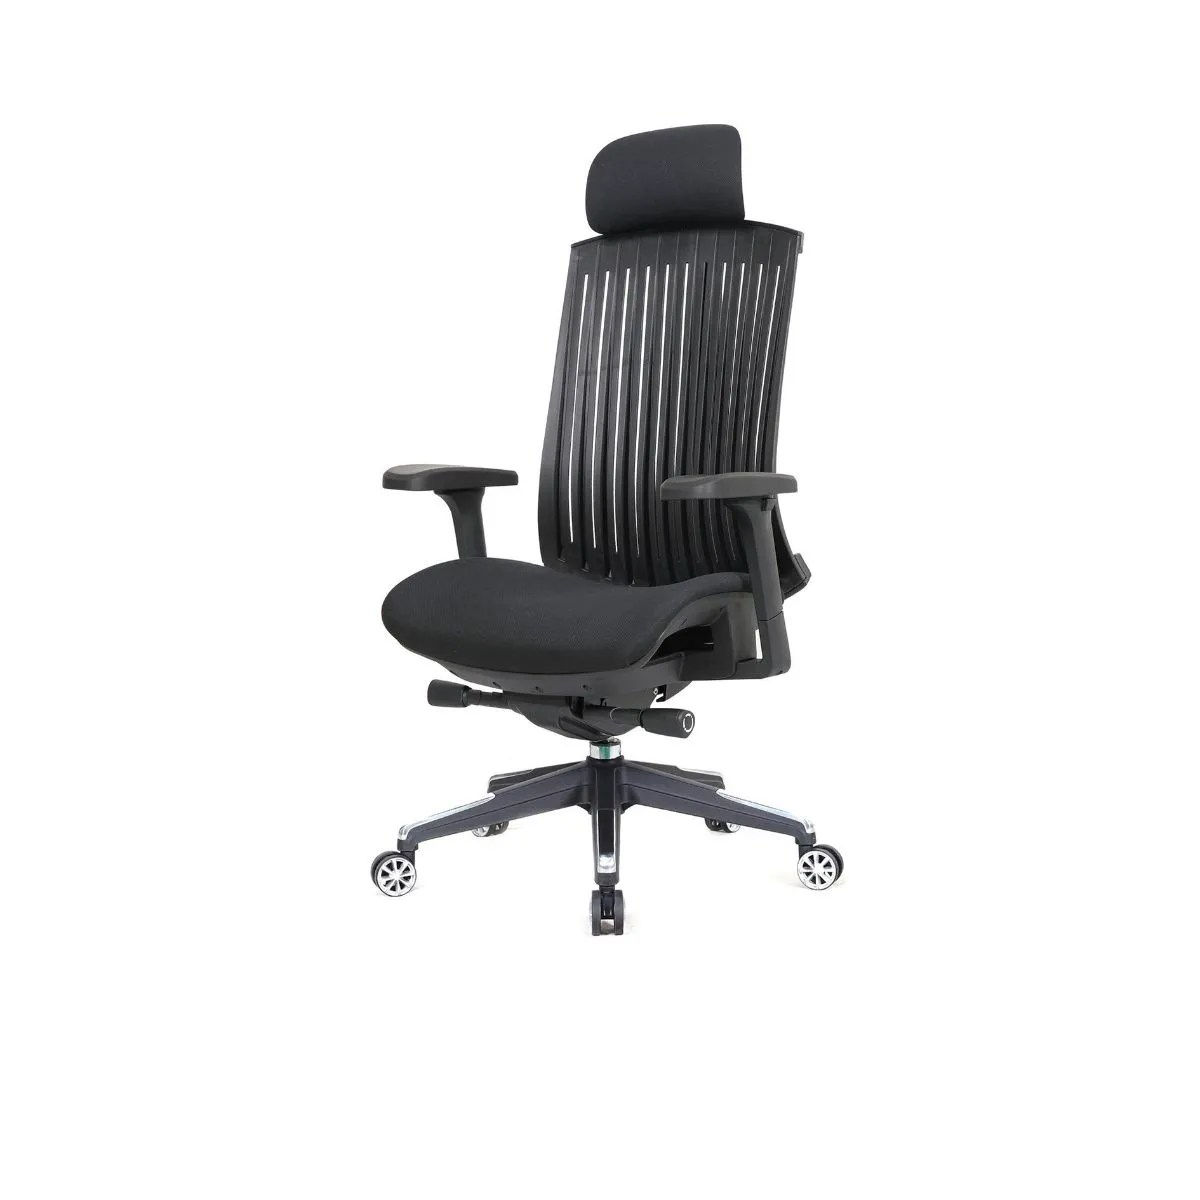 ergonomic chair guidelines covers for weddings shropshire buy office chairs in a range of styles my home needs that